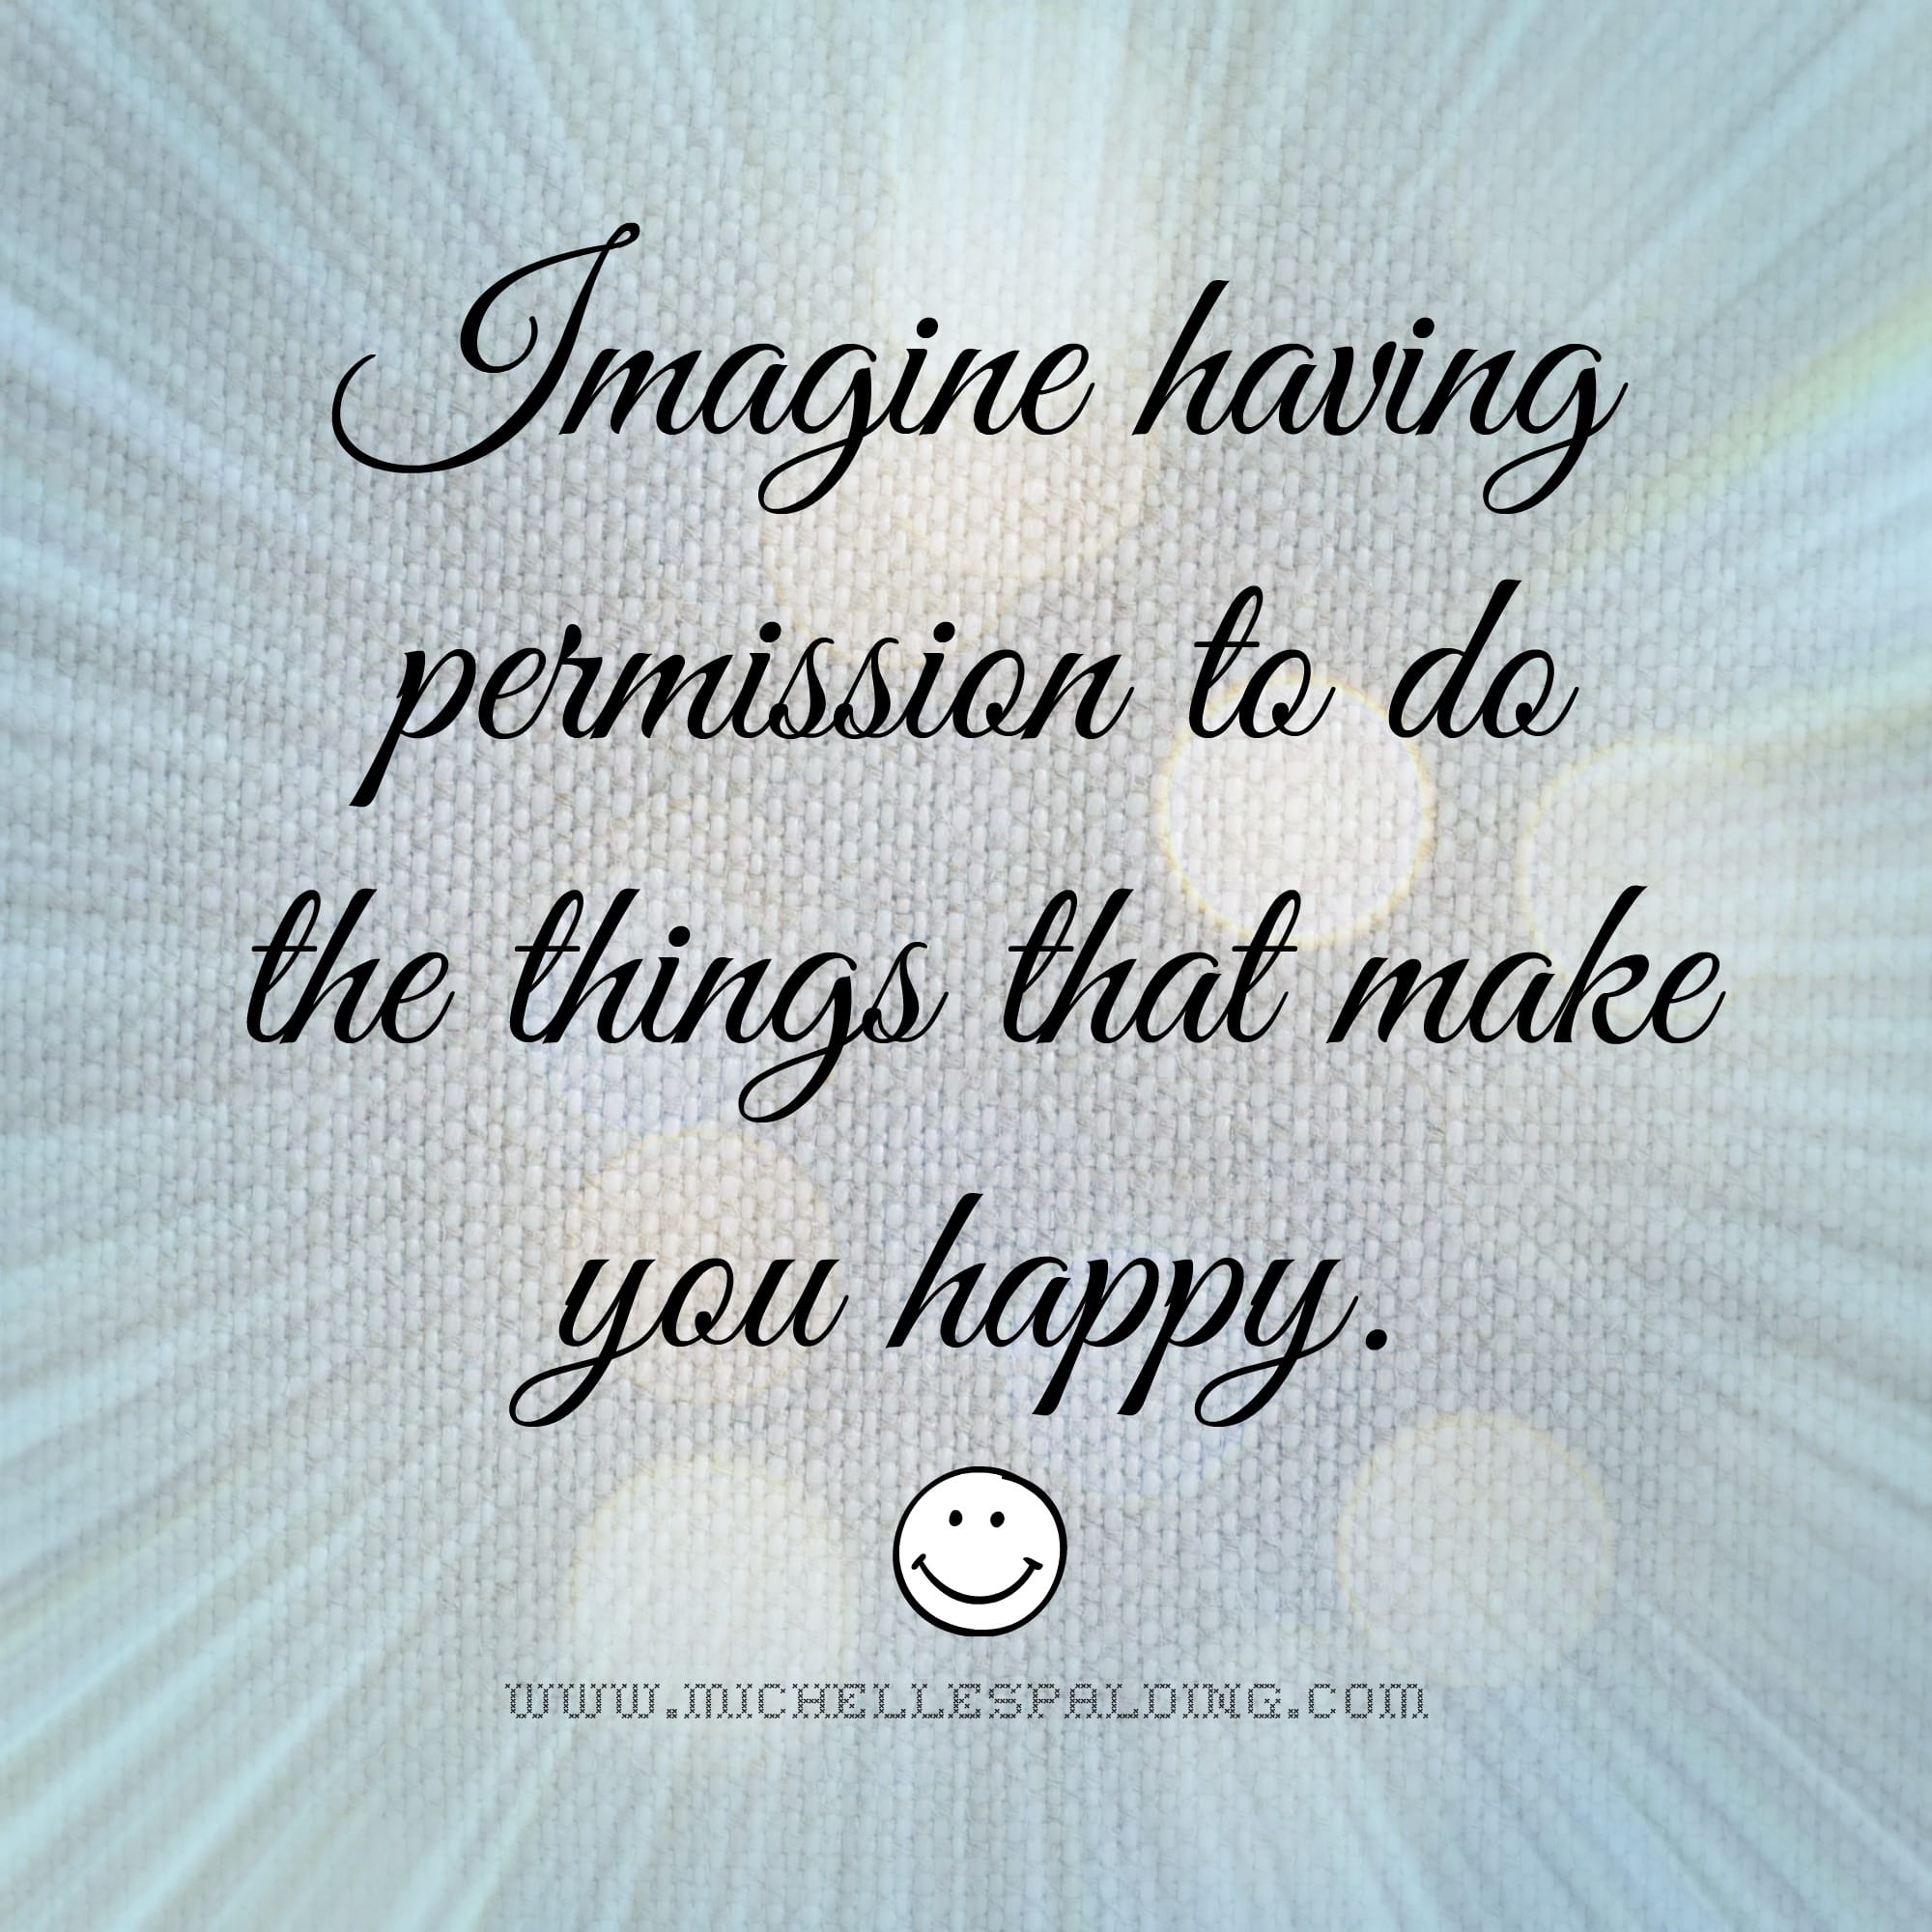 Imagine having permission to do the things that make you happy.